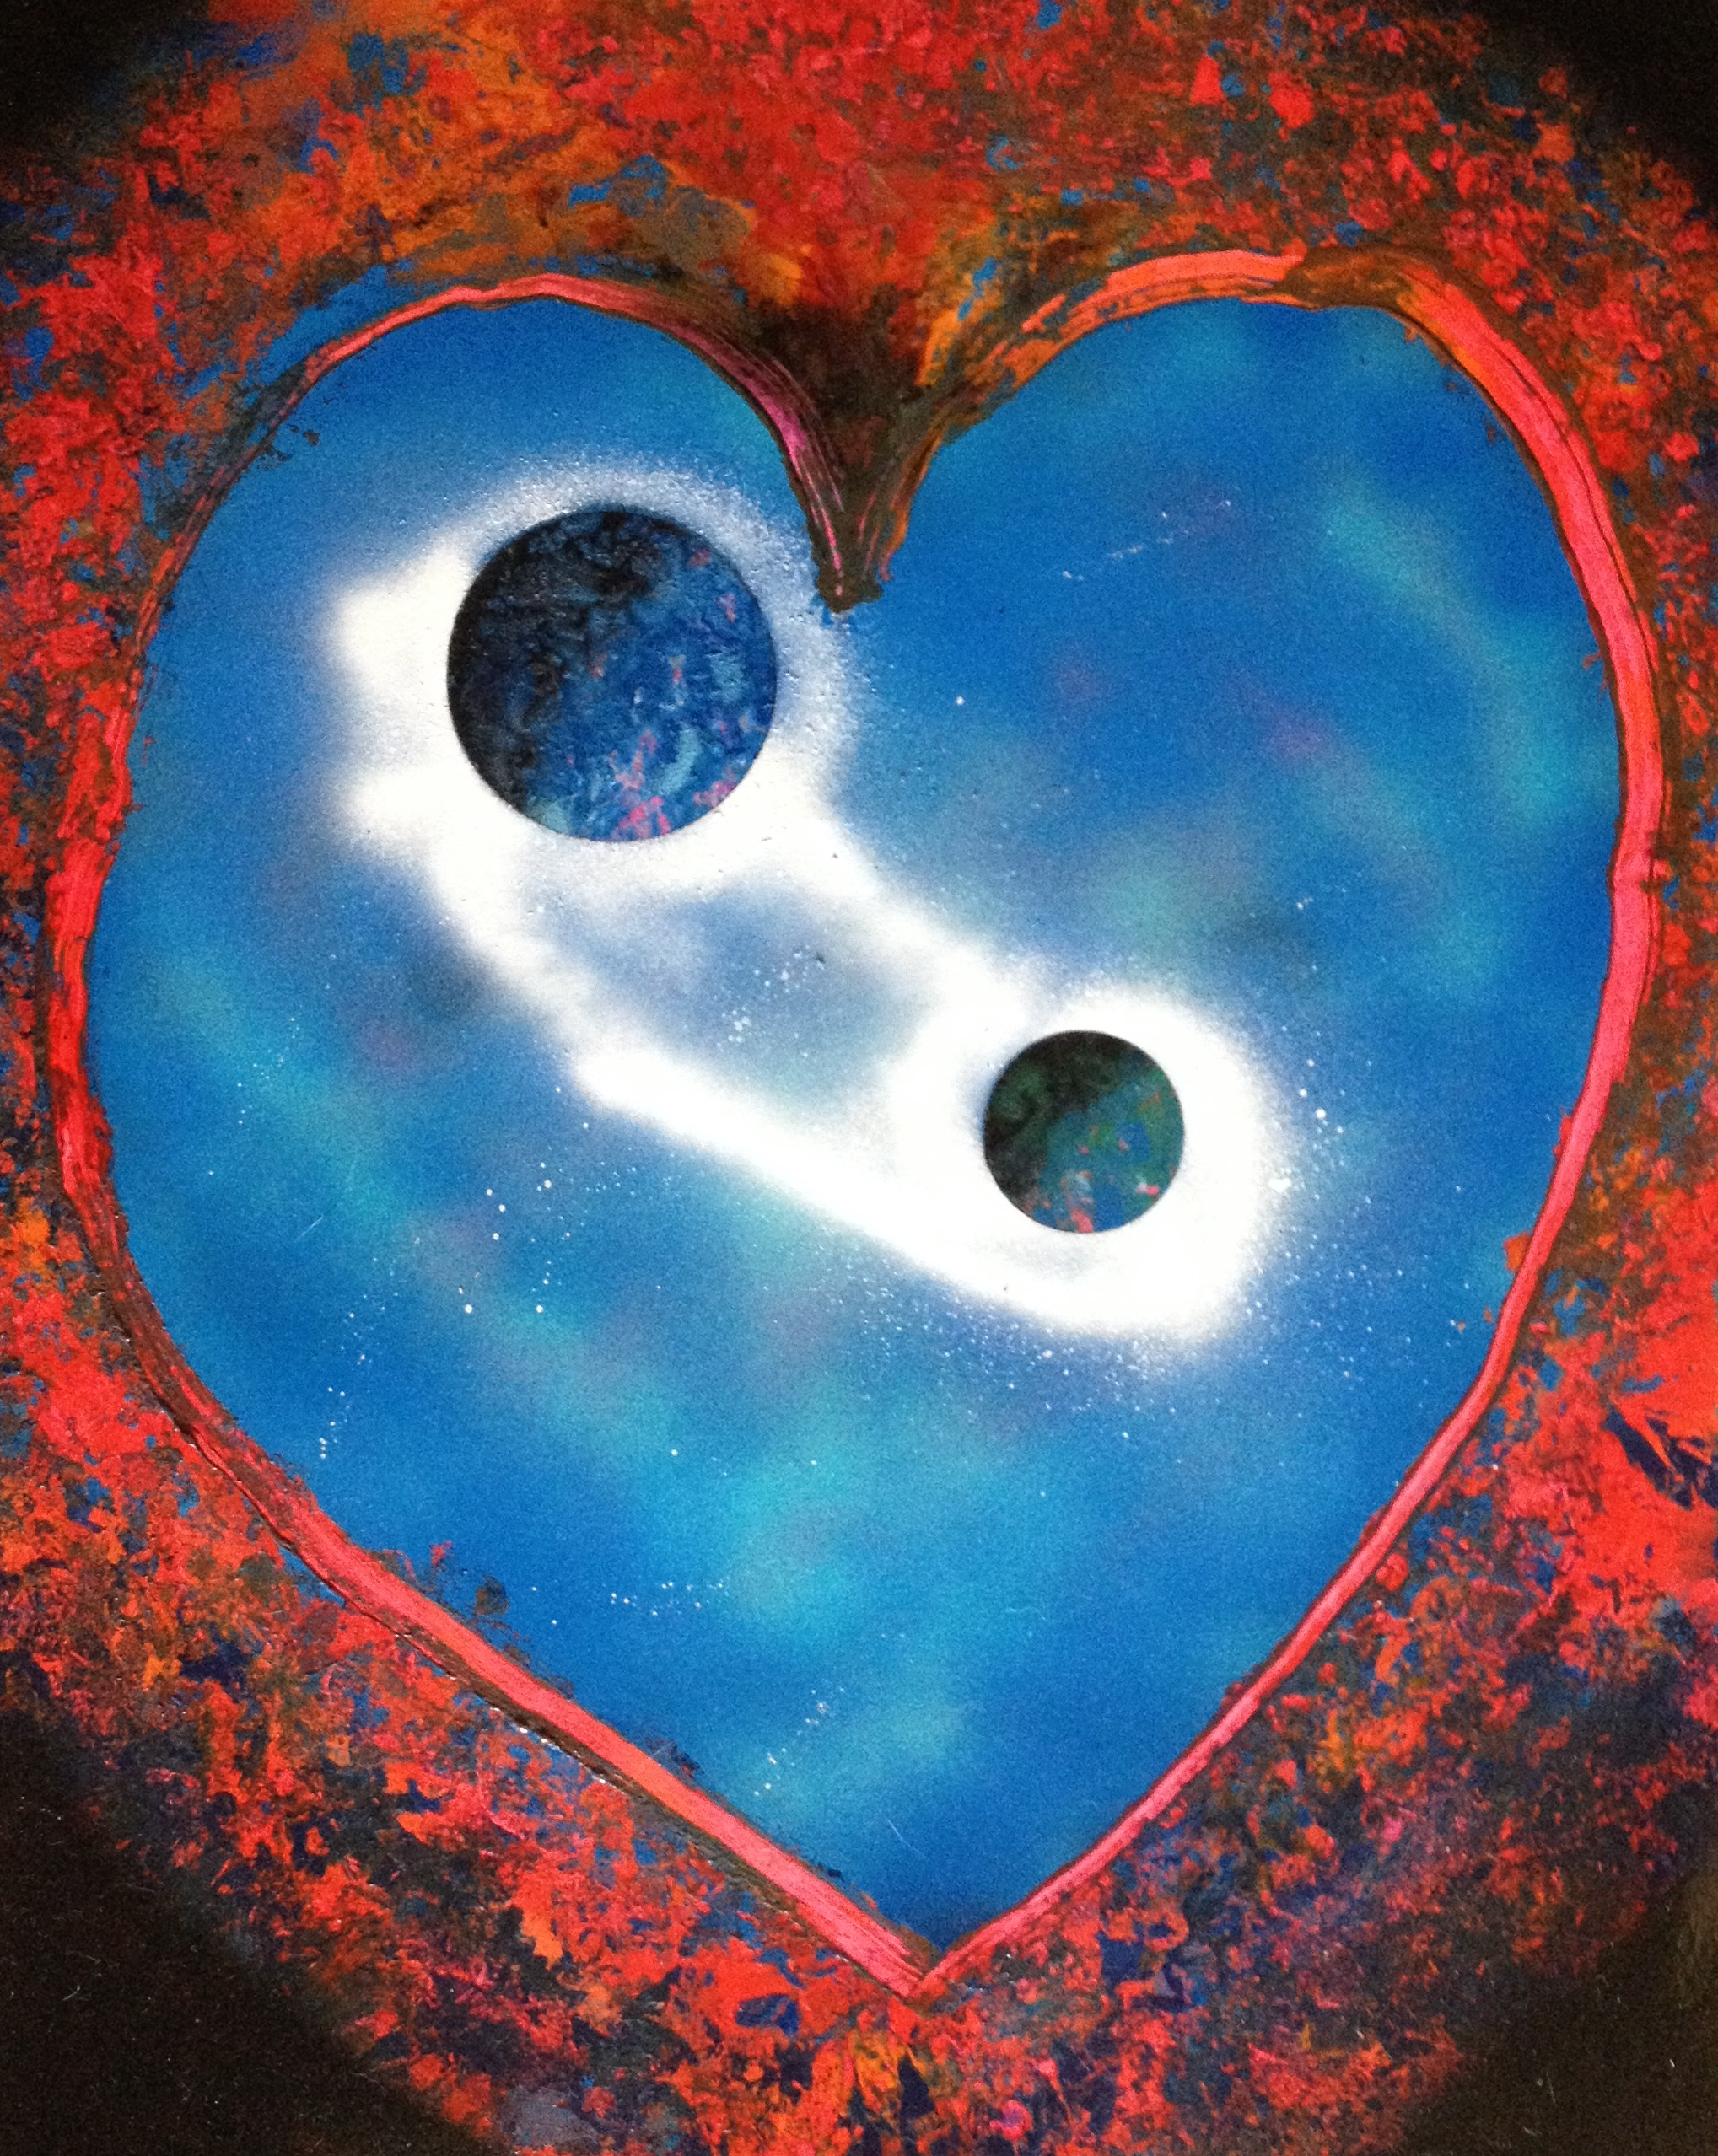 22 x 28 spray paint art heart and two planets